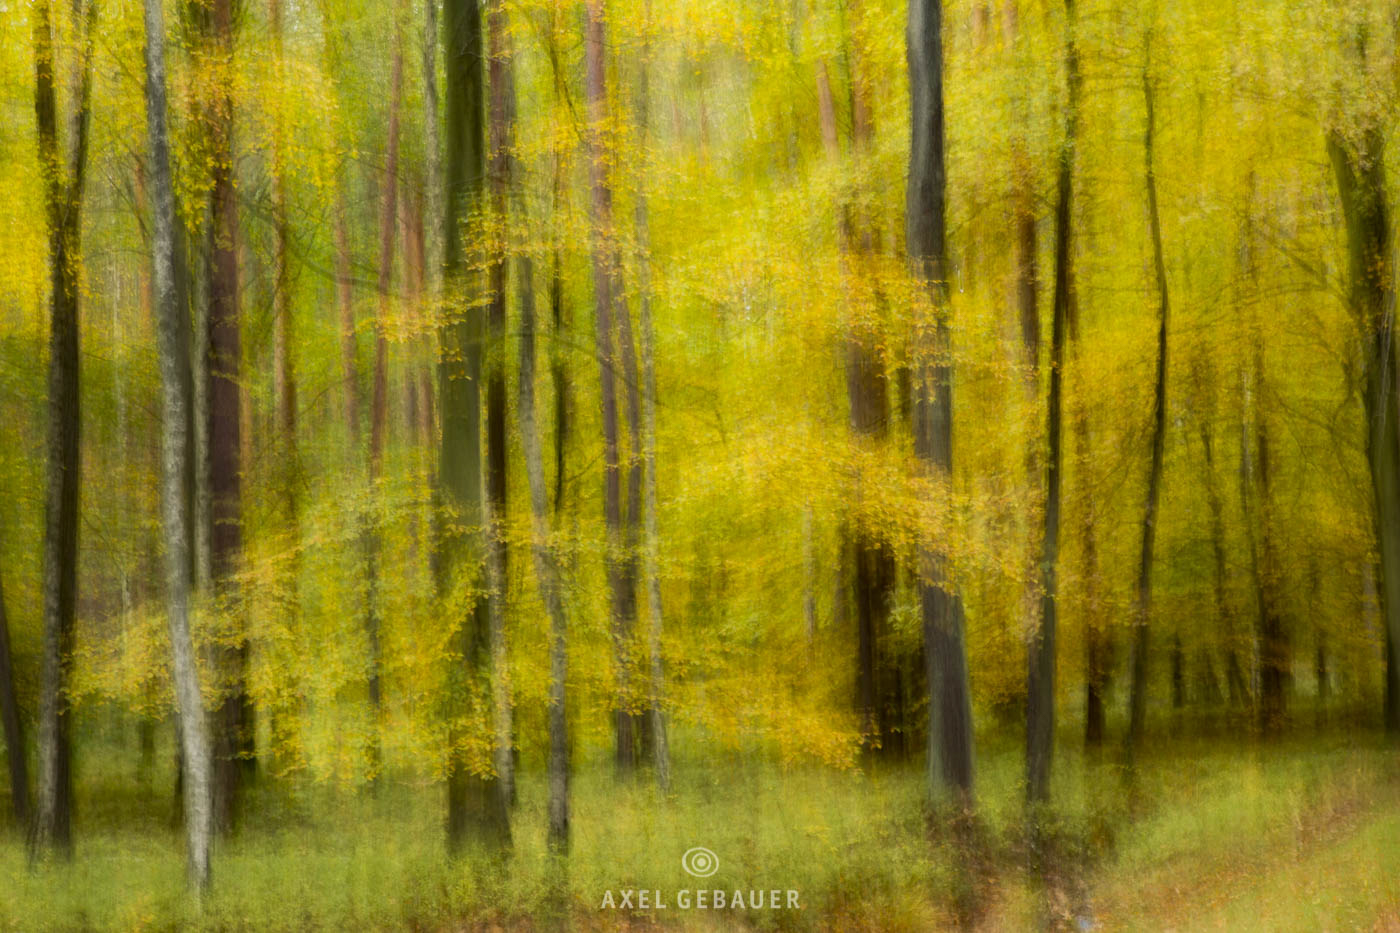 BeechForest, photographic painting due to camera movement